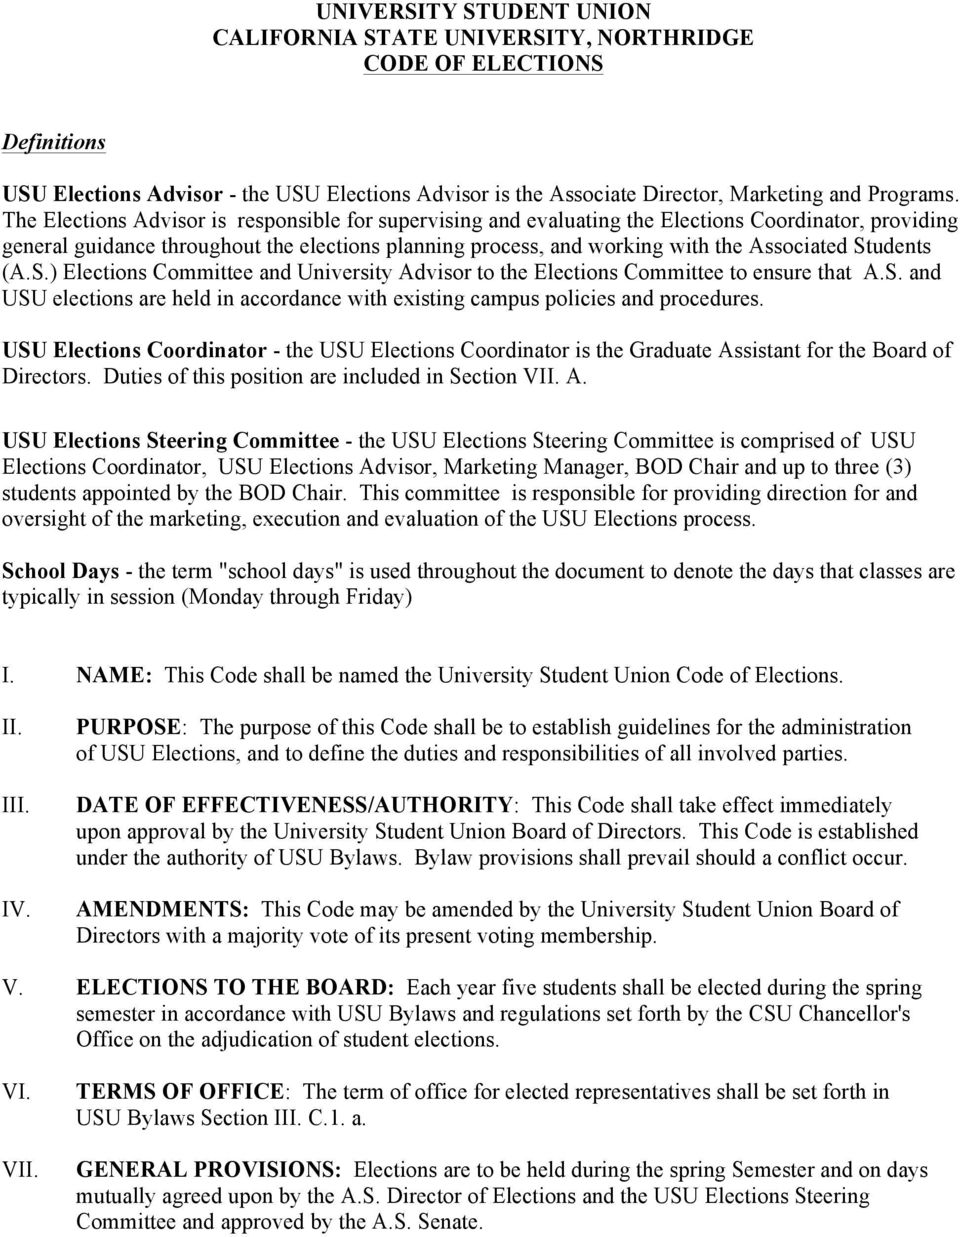 Students (A.S.) Elections Committee and University Advisor to the Elections Committee to ensure that A.S. and USU elections are held in accordance with existing campus policies and procedures.